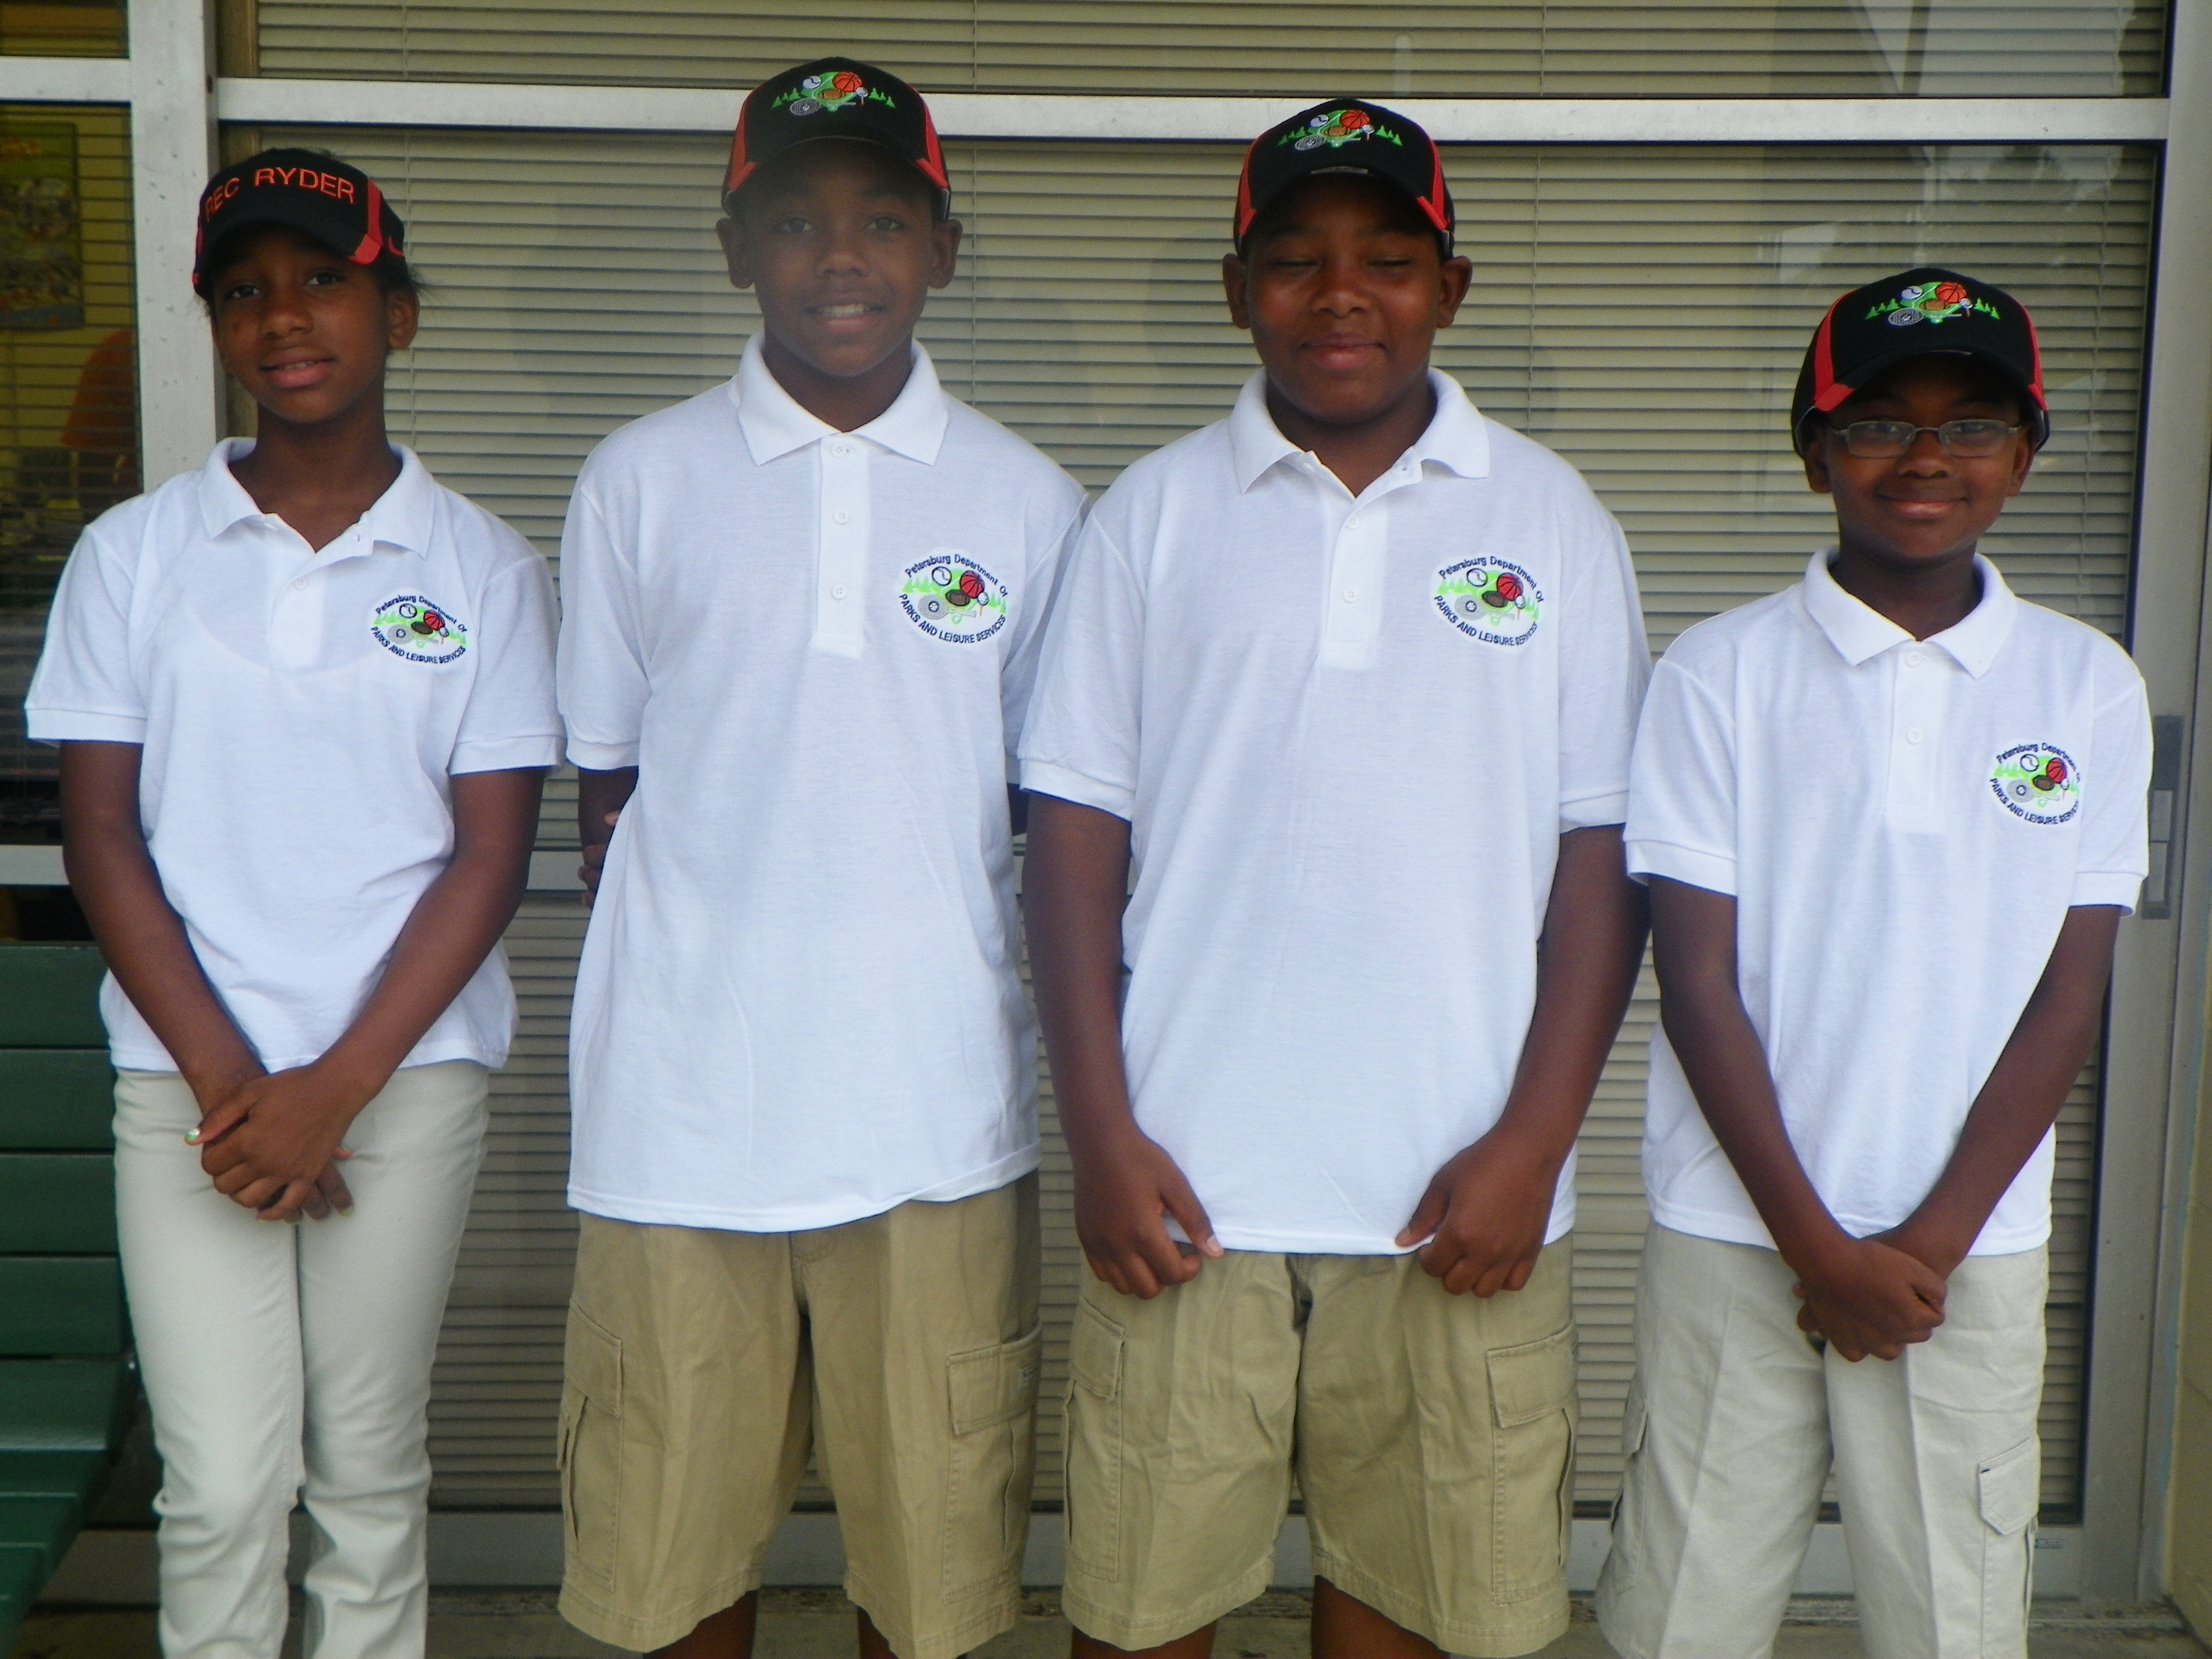 Petersburg Jr. Golfers compete in Tournament